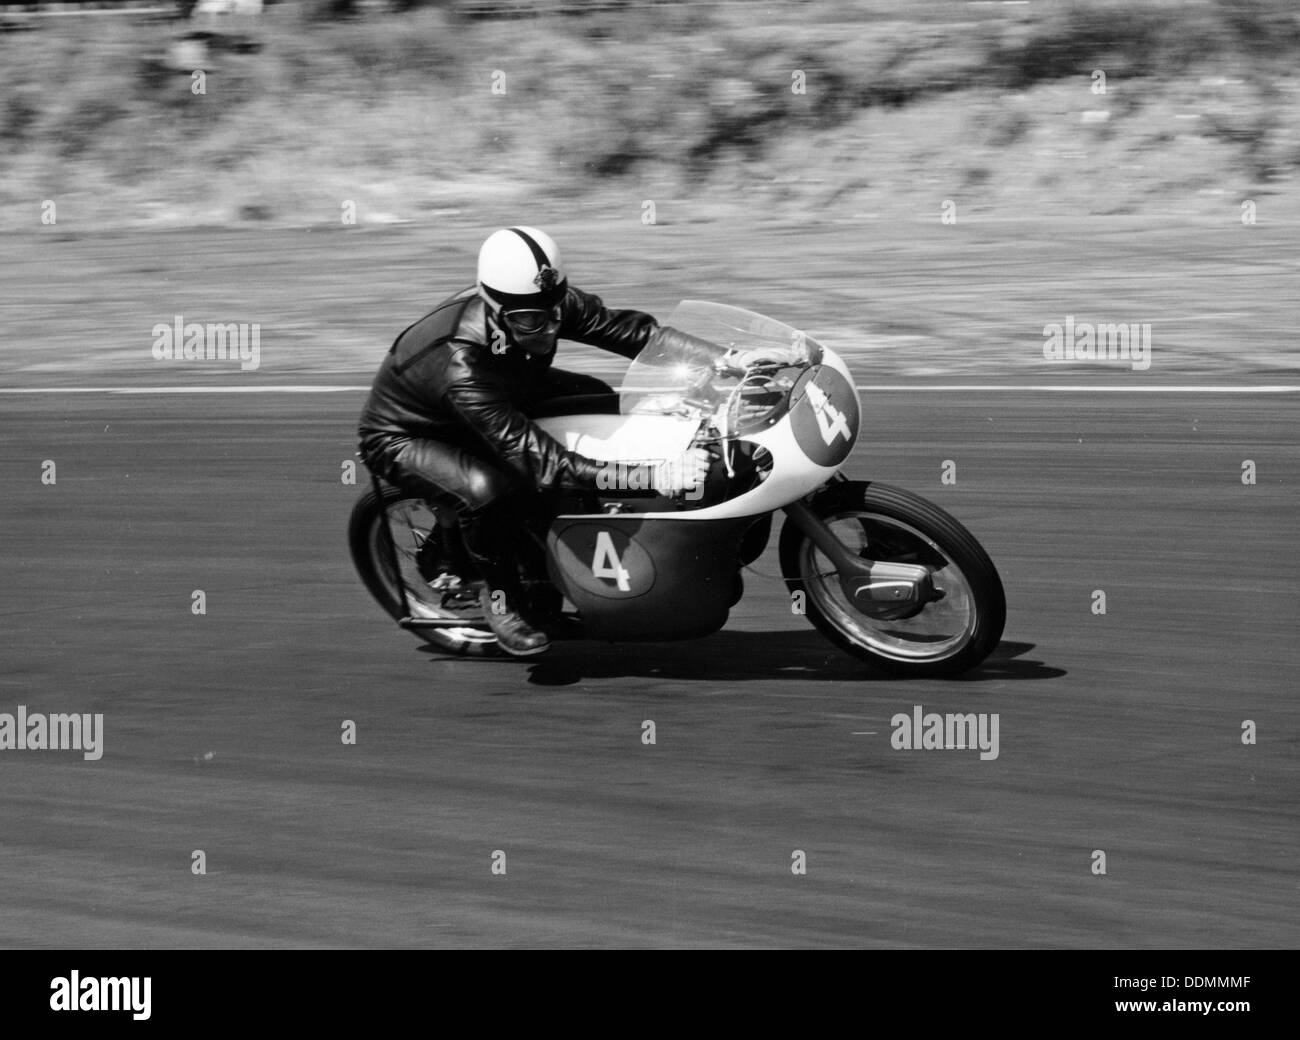 An Ariel 250 racing at Snetterton, Norfolk, 1962. - Stock Image